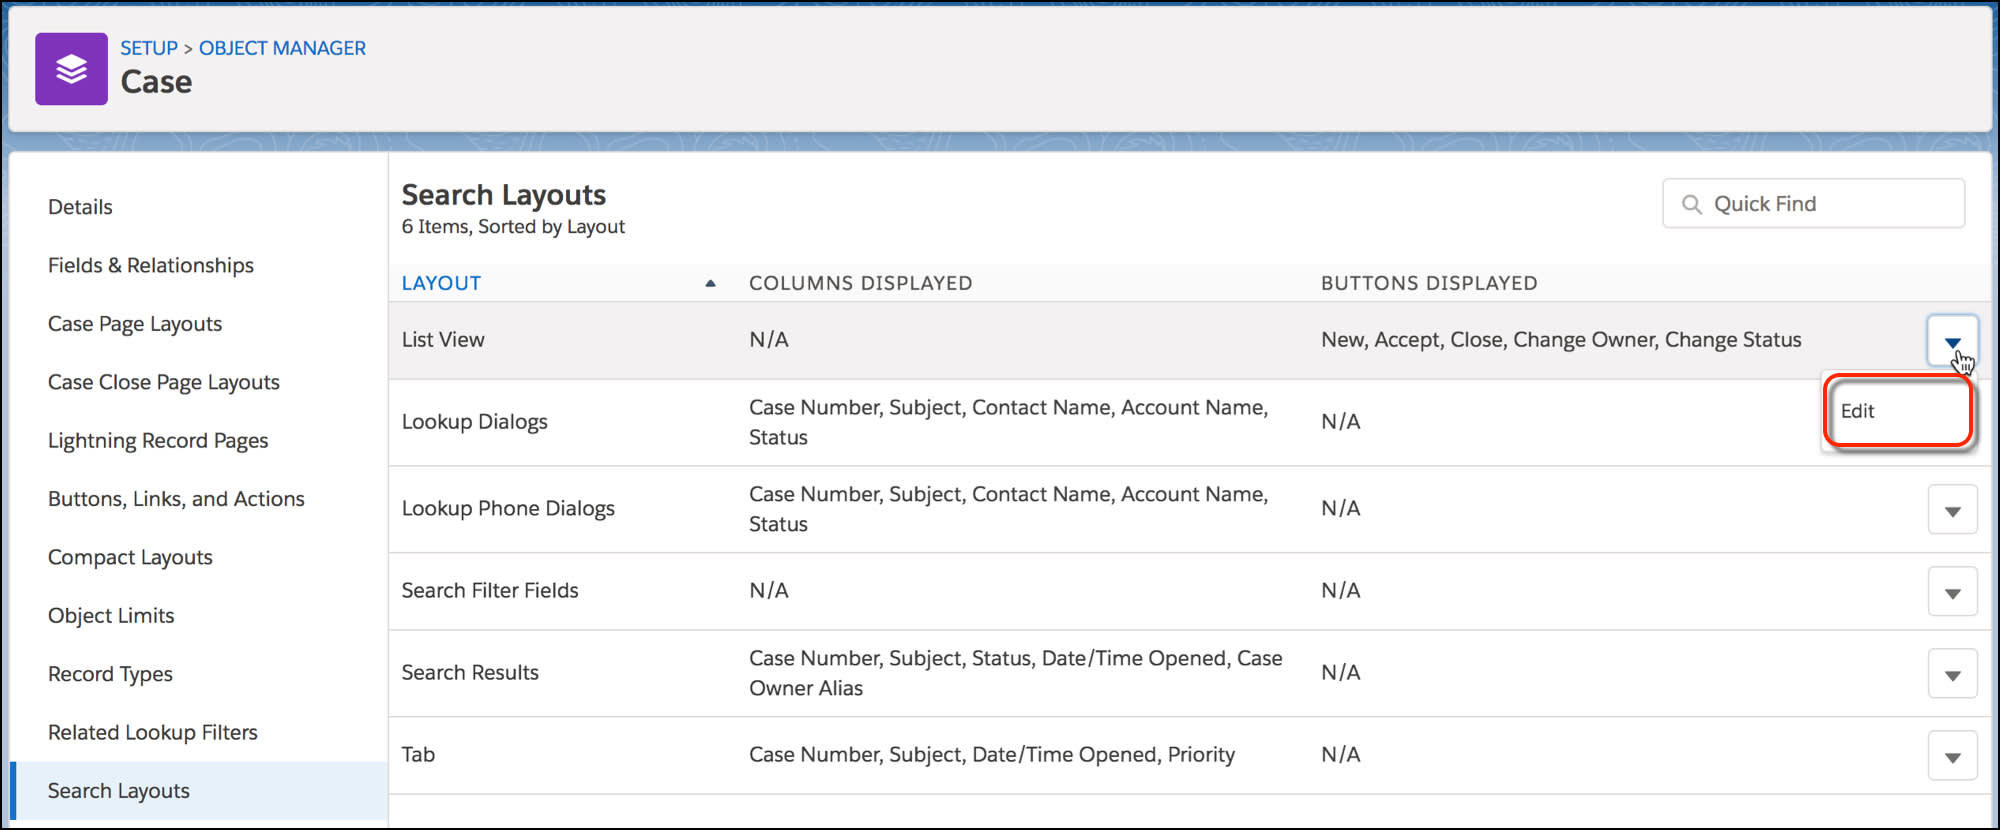 Search Layouts page for the case object, showing the edit button for the List View layout